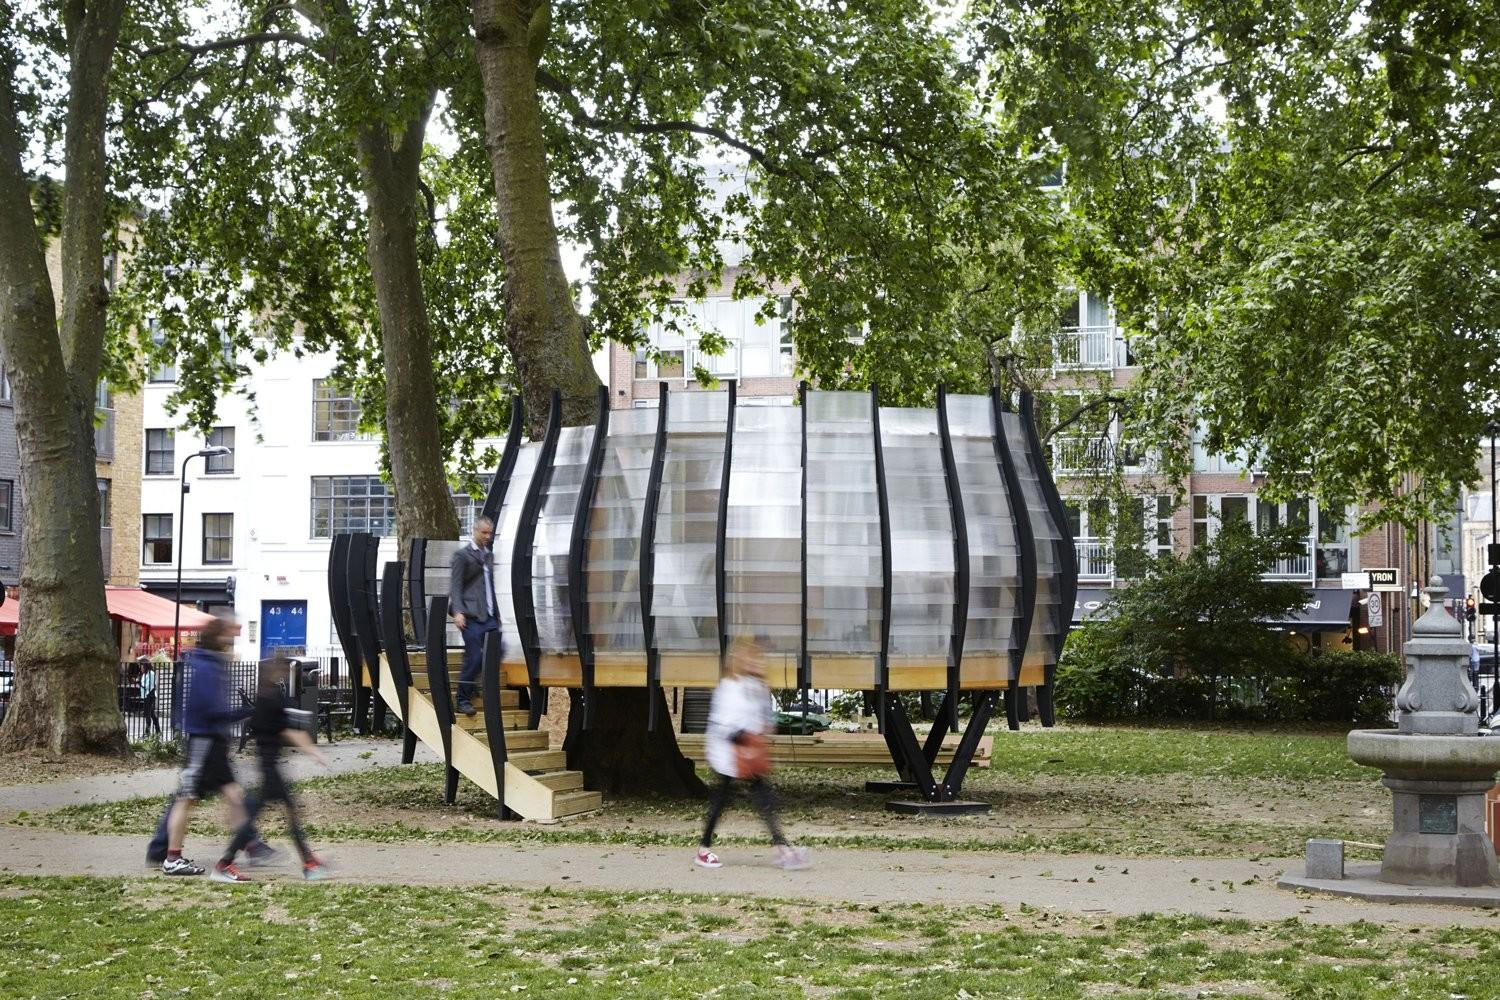 Office Treehouse Opens Hoxton Square London